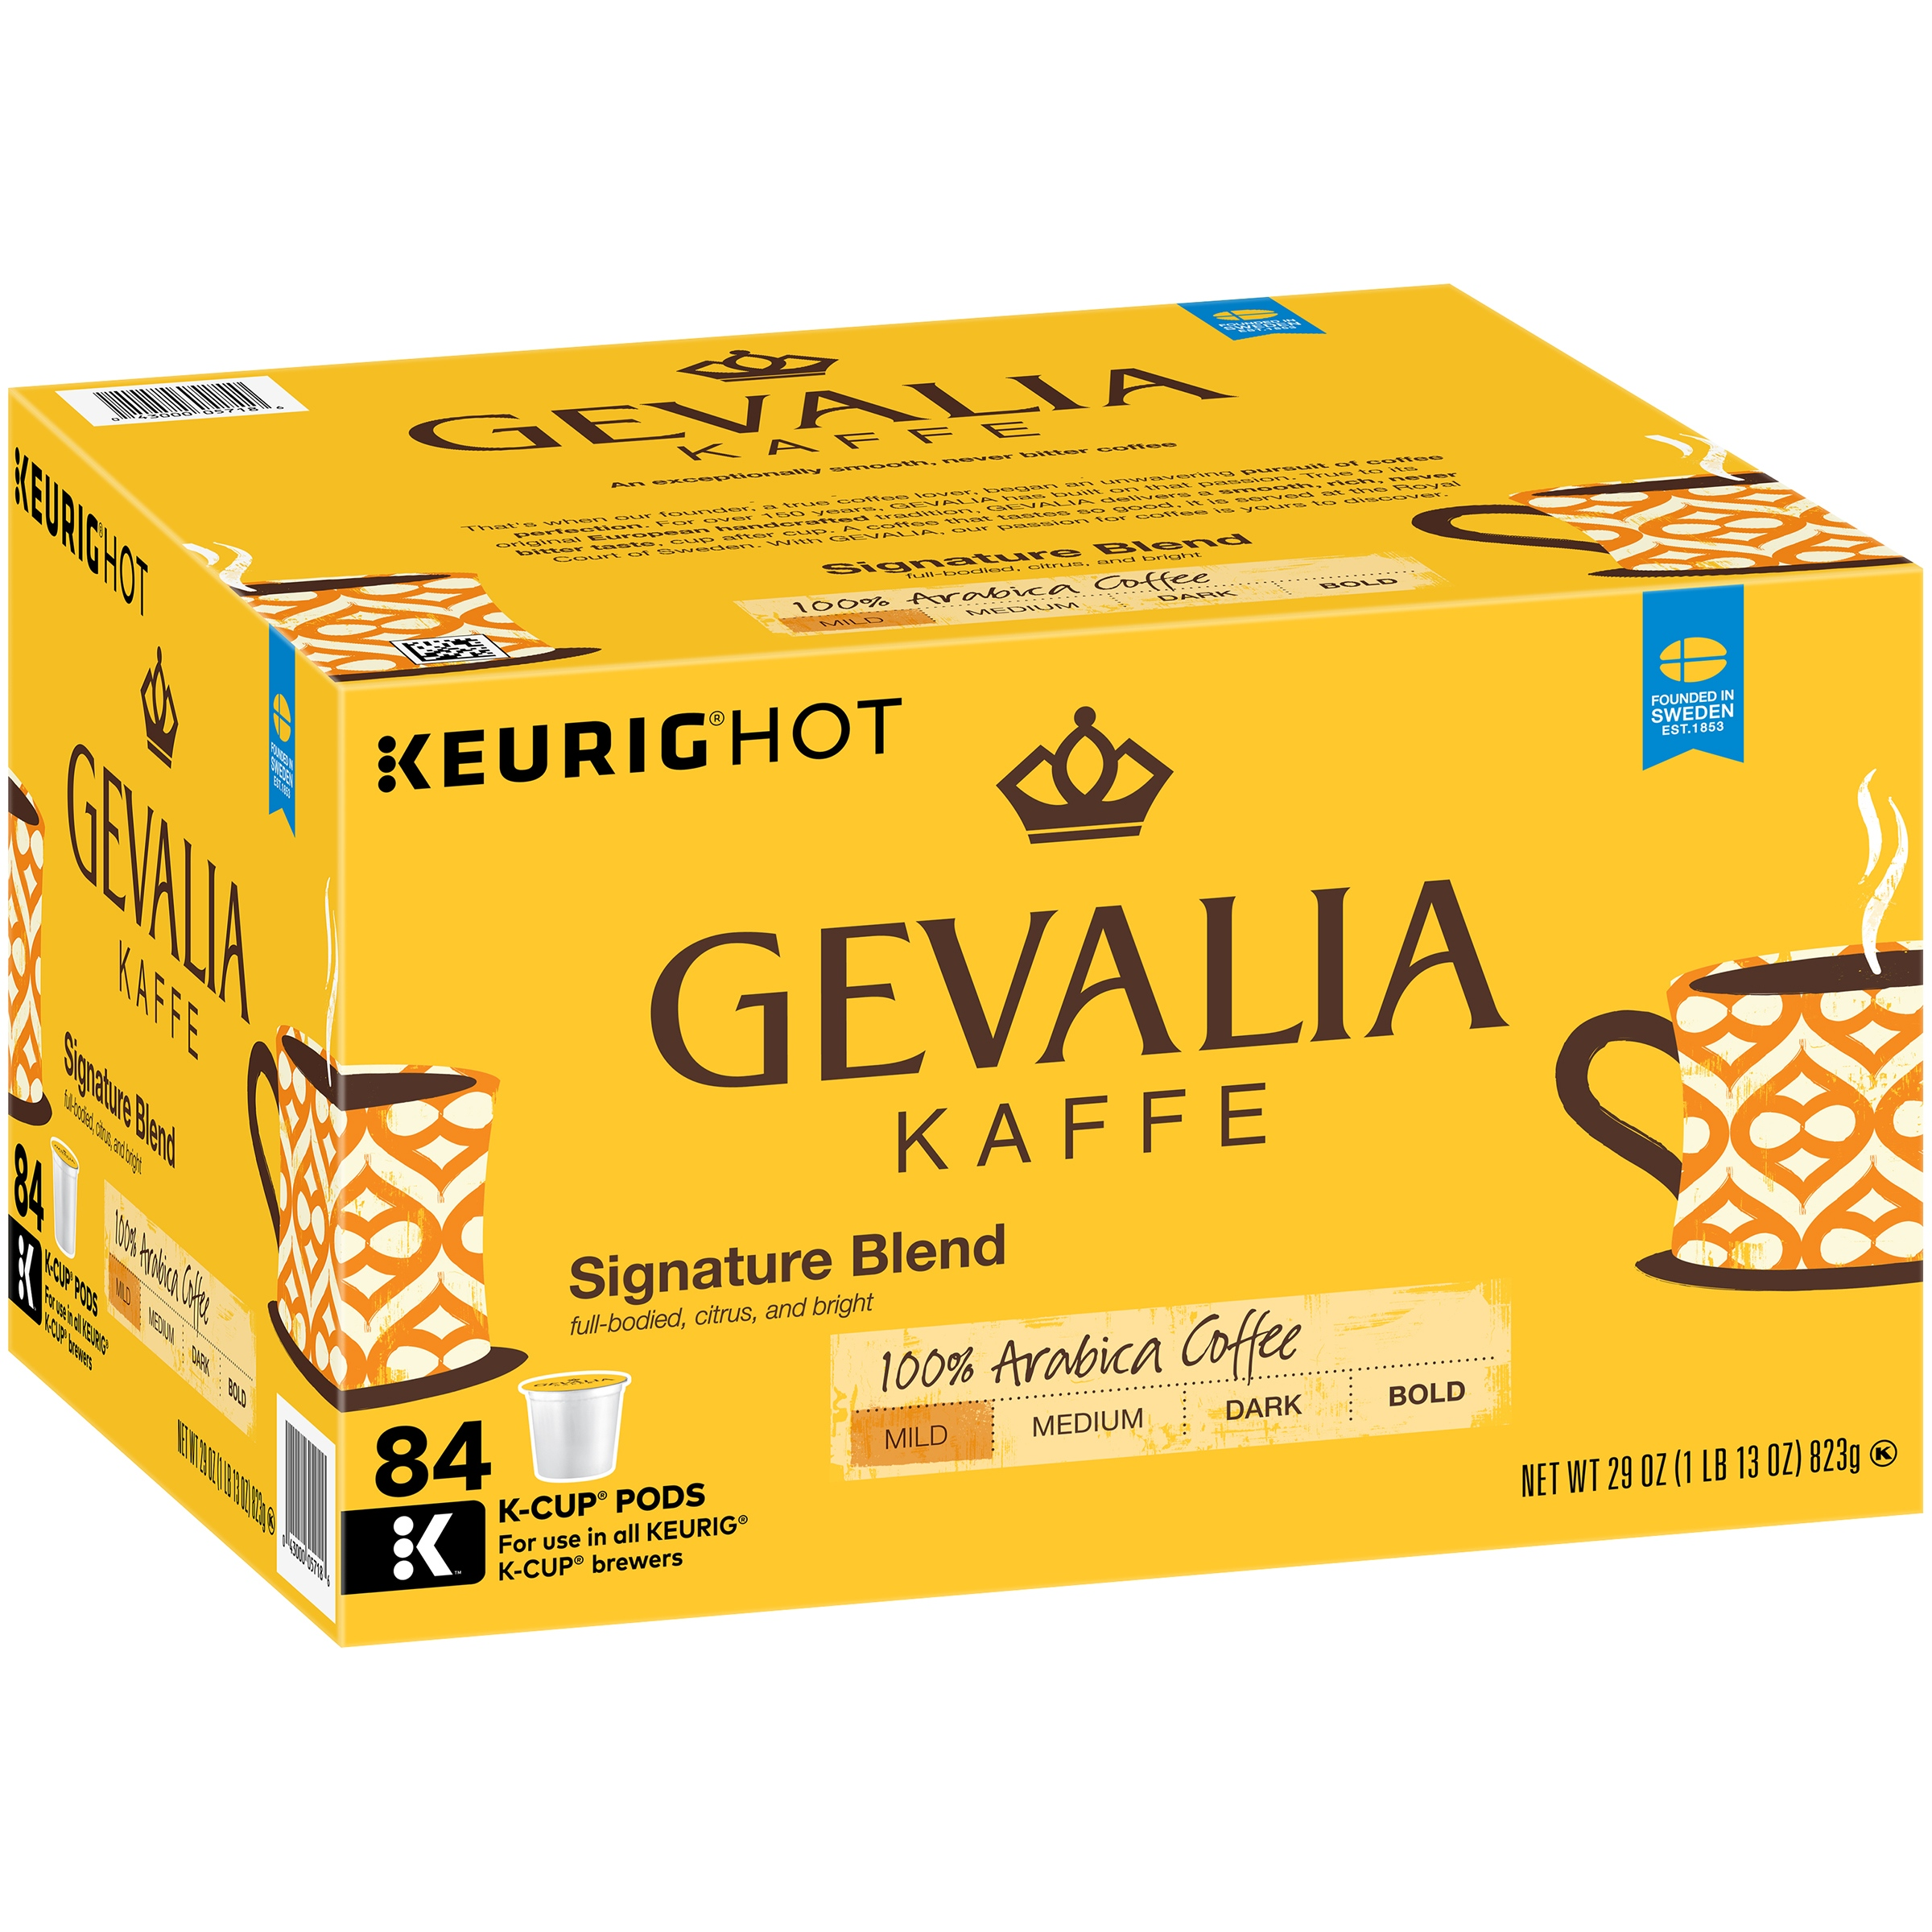 Gevalia Signature Blend Coffee K-Cup® Pods 84 ct Box